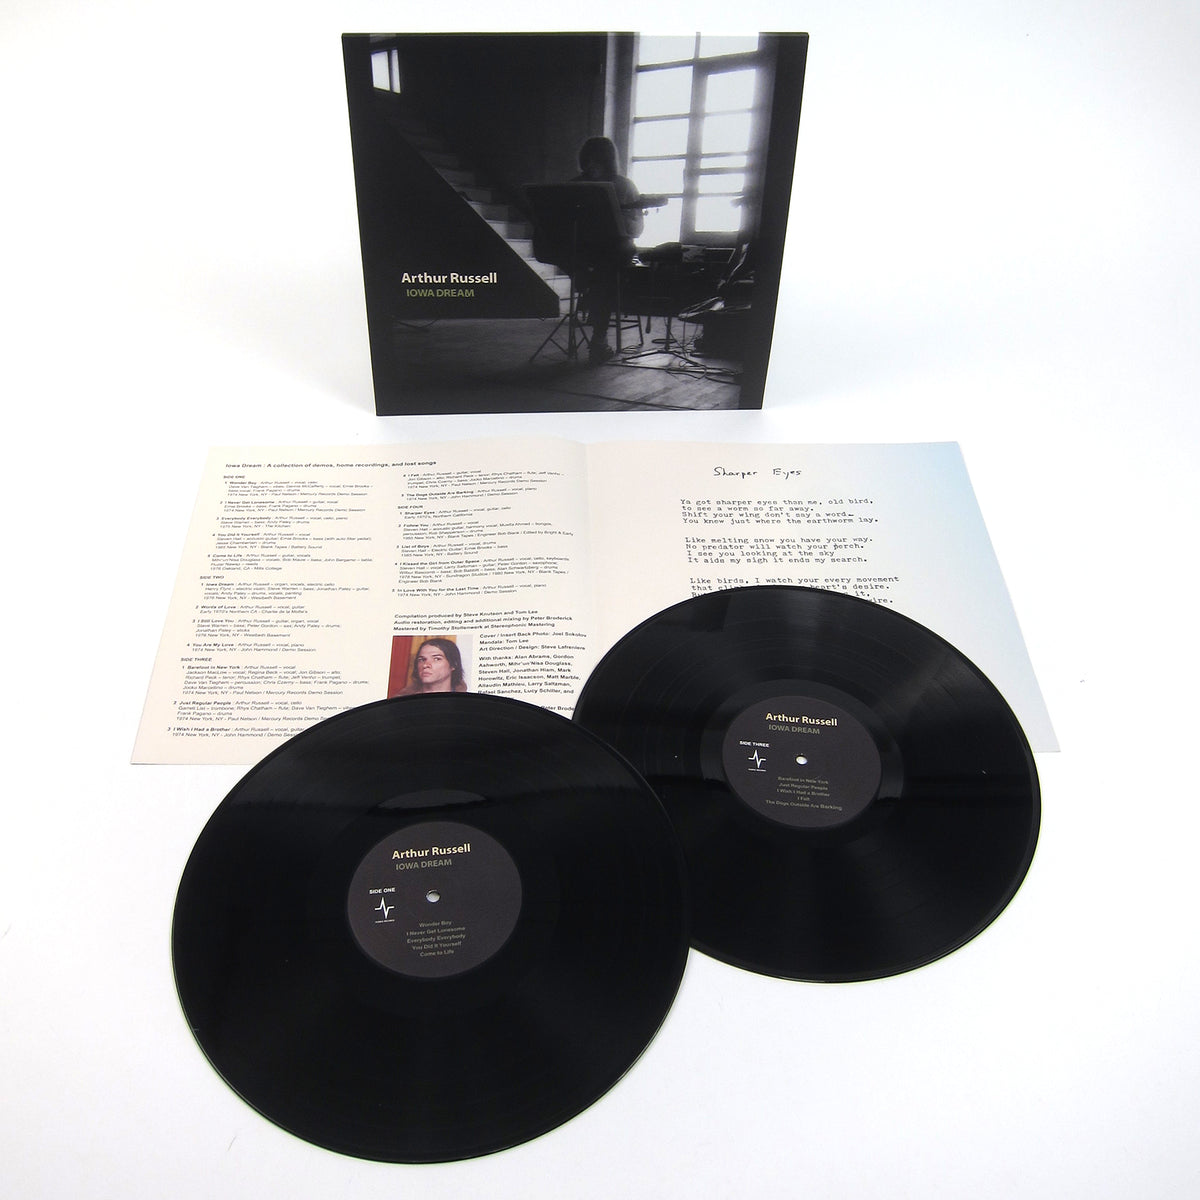 Arthur Russell: Iowa Dream Vinyl 2LP